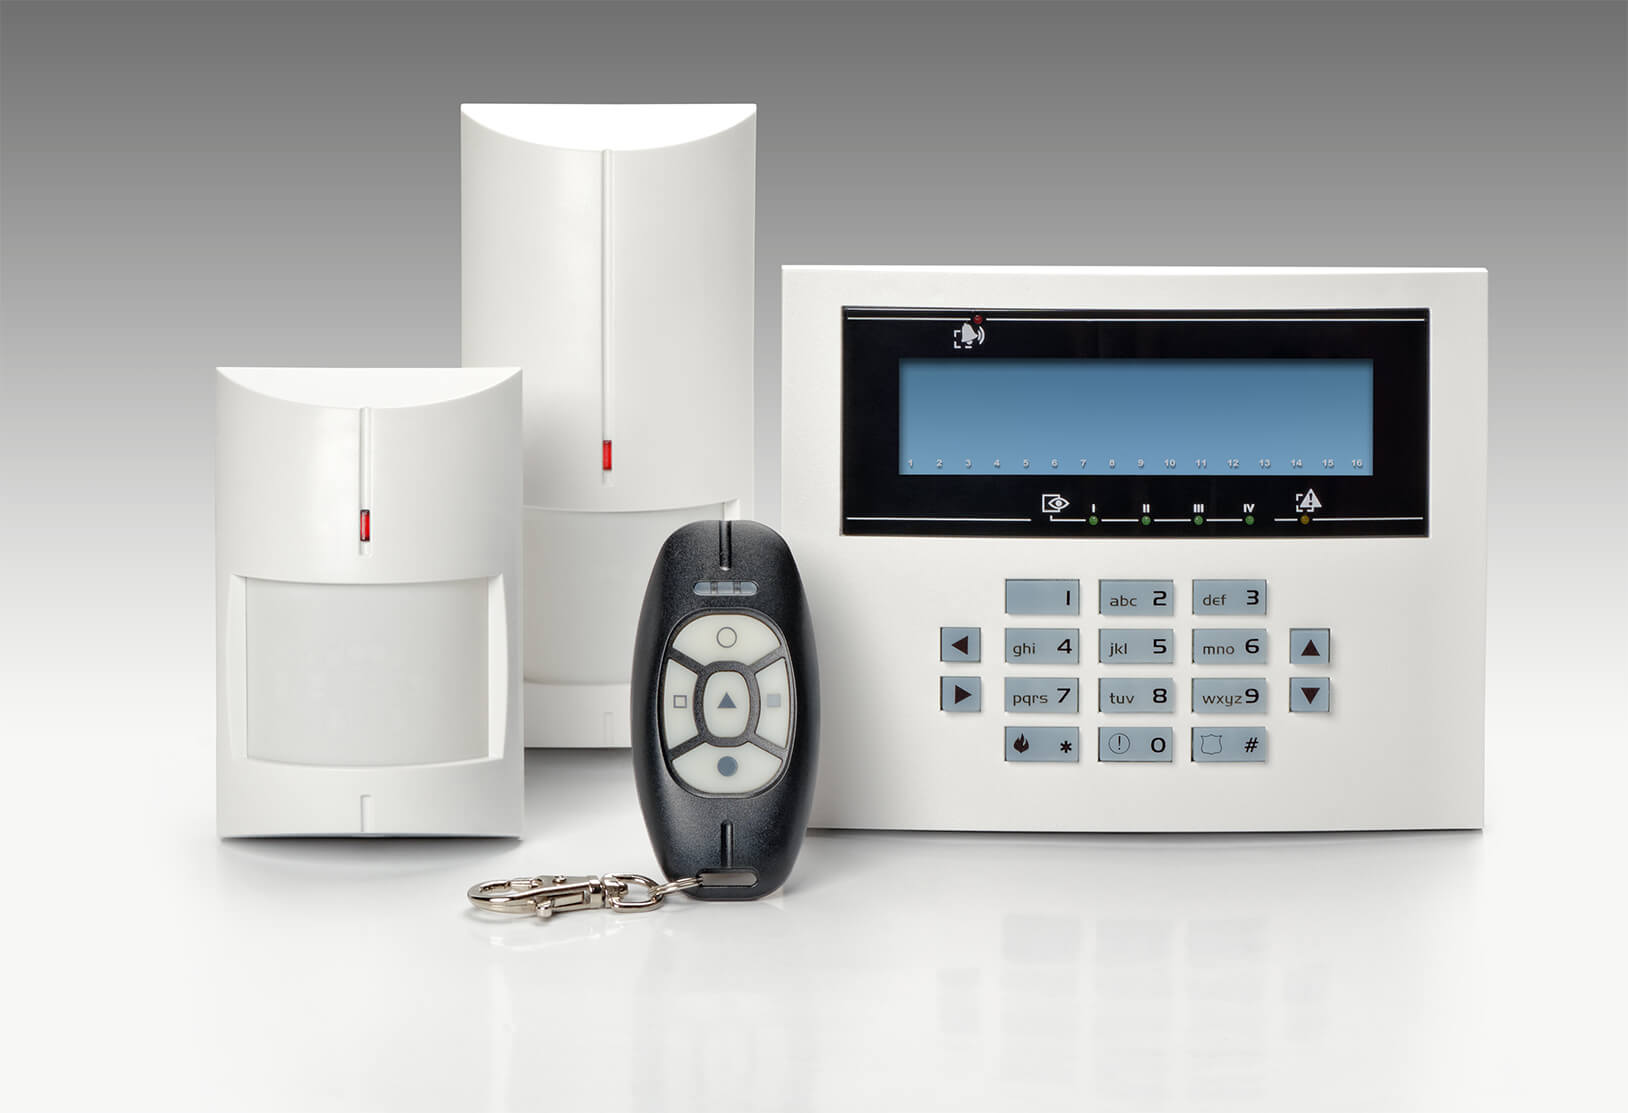 Commercial Burglar Alarms For Business in Kensington SW5  - Local Kensington SW5 burglar alarm company.Call 02078872244 - Dedicated to Safety & Security. Companies, shops and homes ..